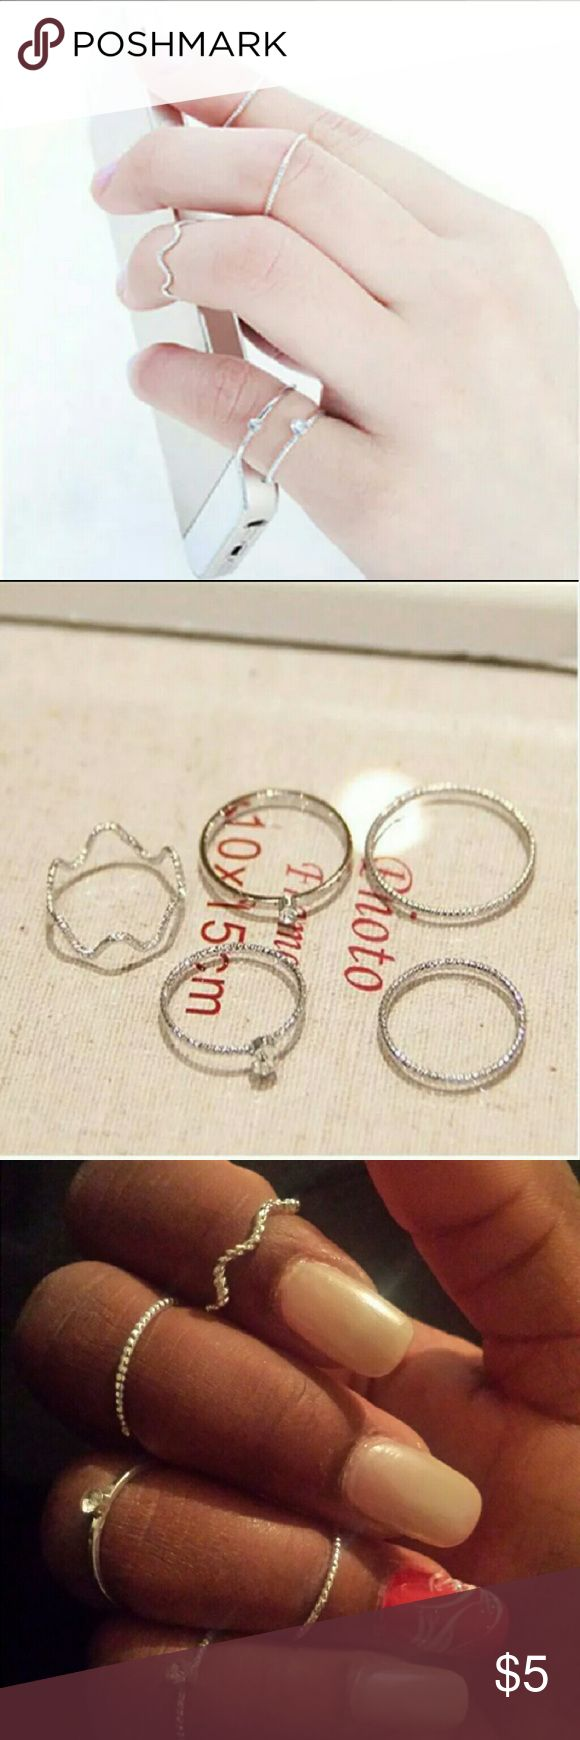 5 Piece Midi Ring Set in silver! Midi rings are very popular right now! They are rings made to fit above the knuckles. This set comes in silver and has 5 pieces! However 1 ring came slightly unperfected and can be seen in the last pic. Not a big deal! Just means can pretty much fit on any finger! Jewelry Rings